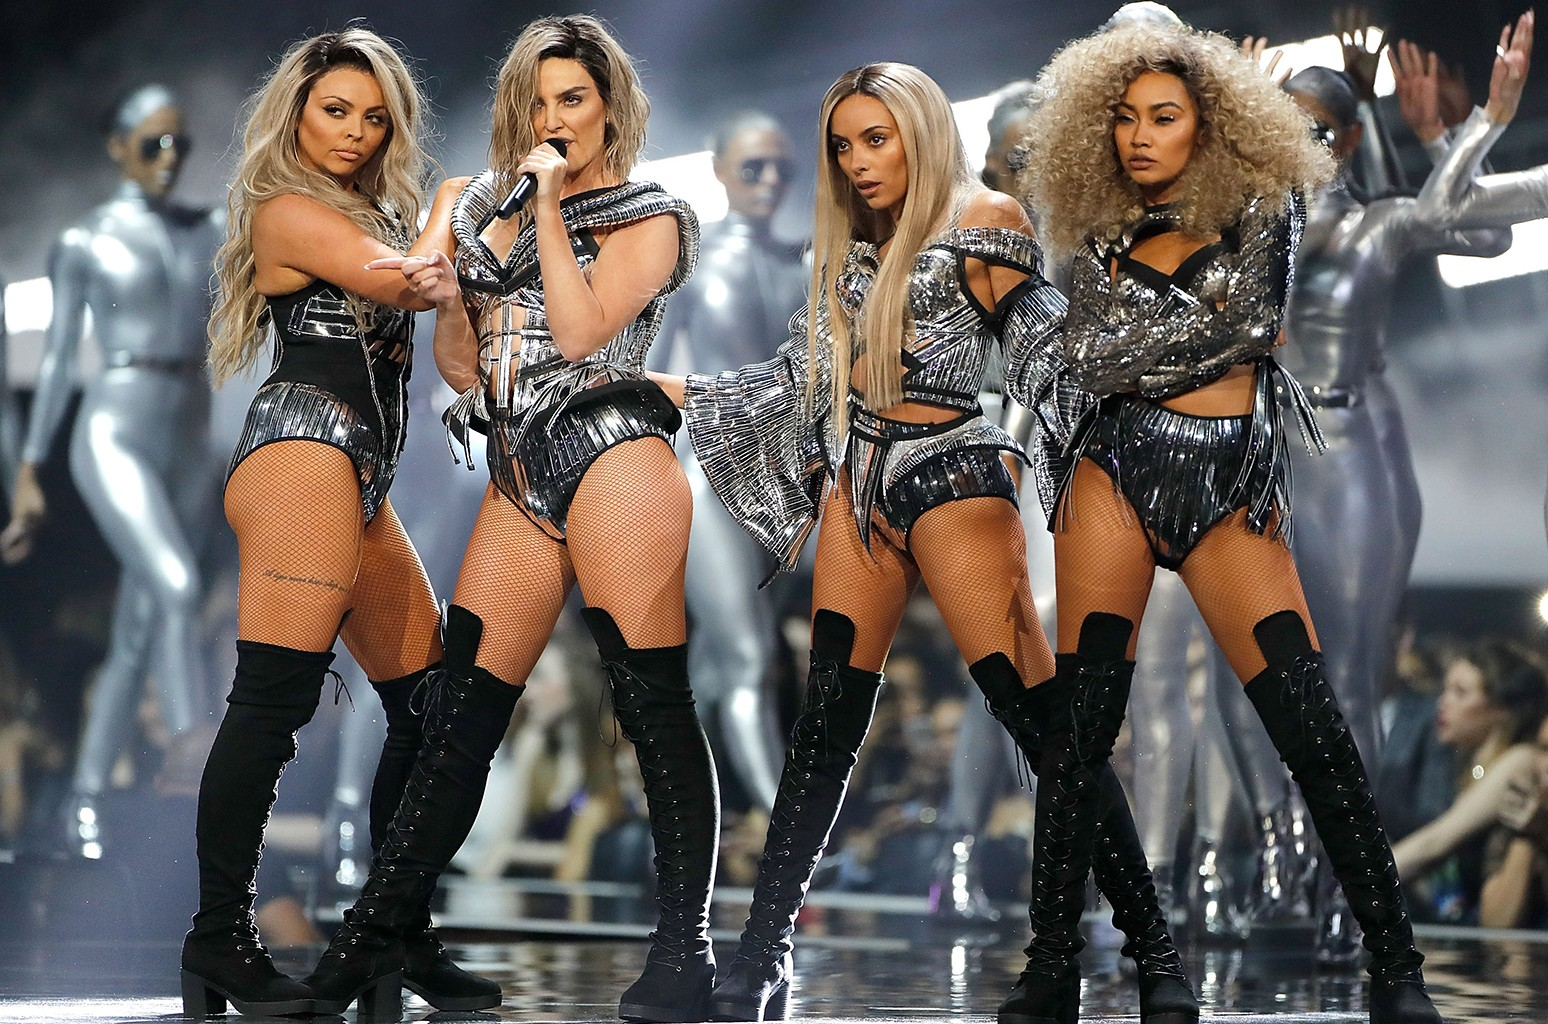 Little Mix perform at The O2 Arena on Feb. 22, 2017 in London.